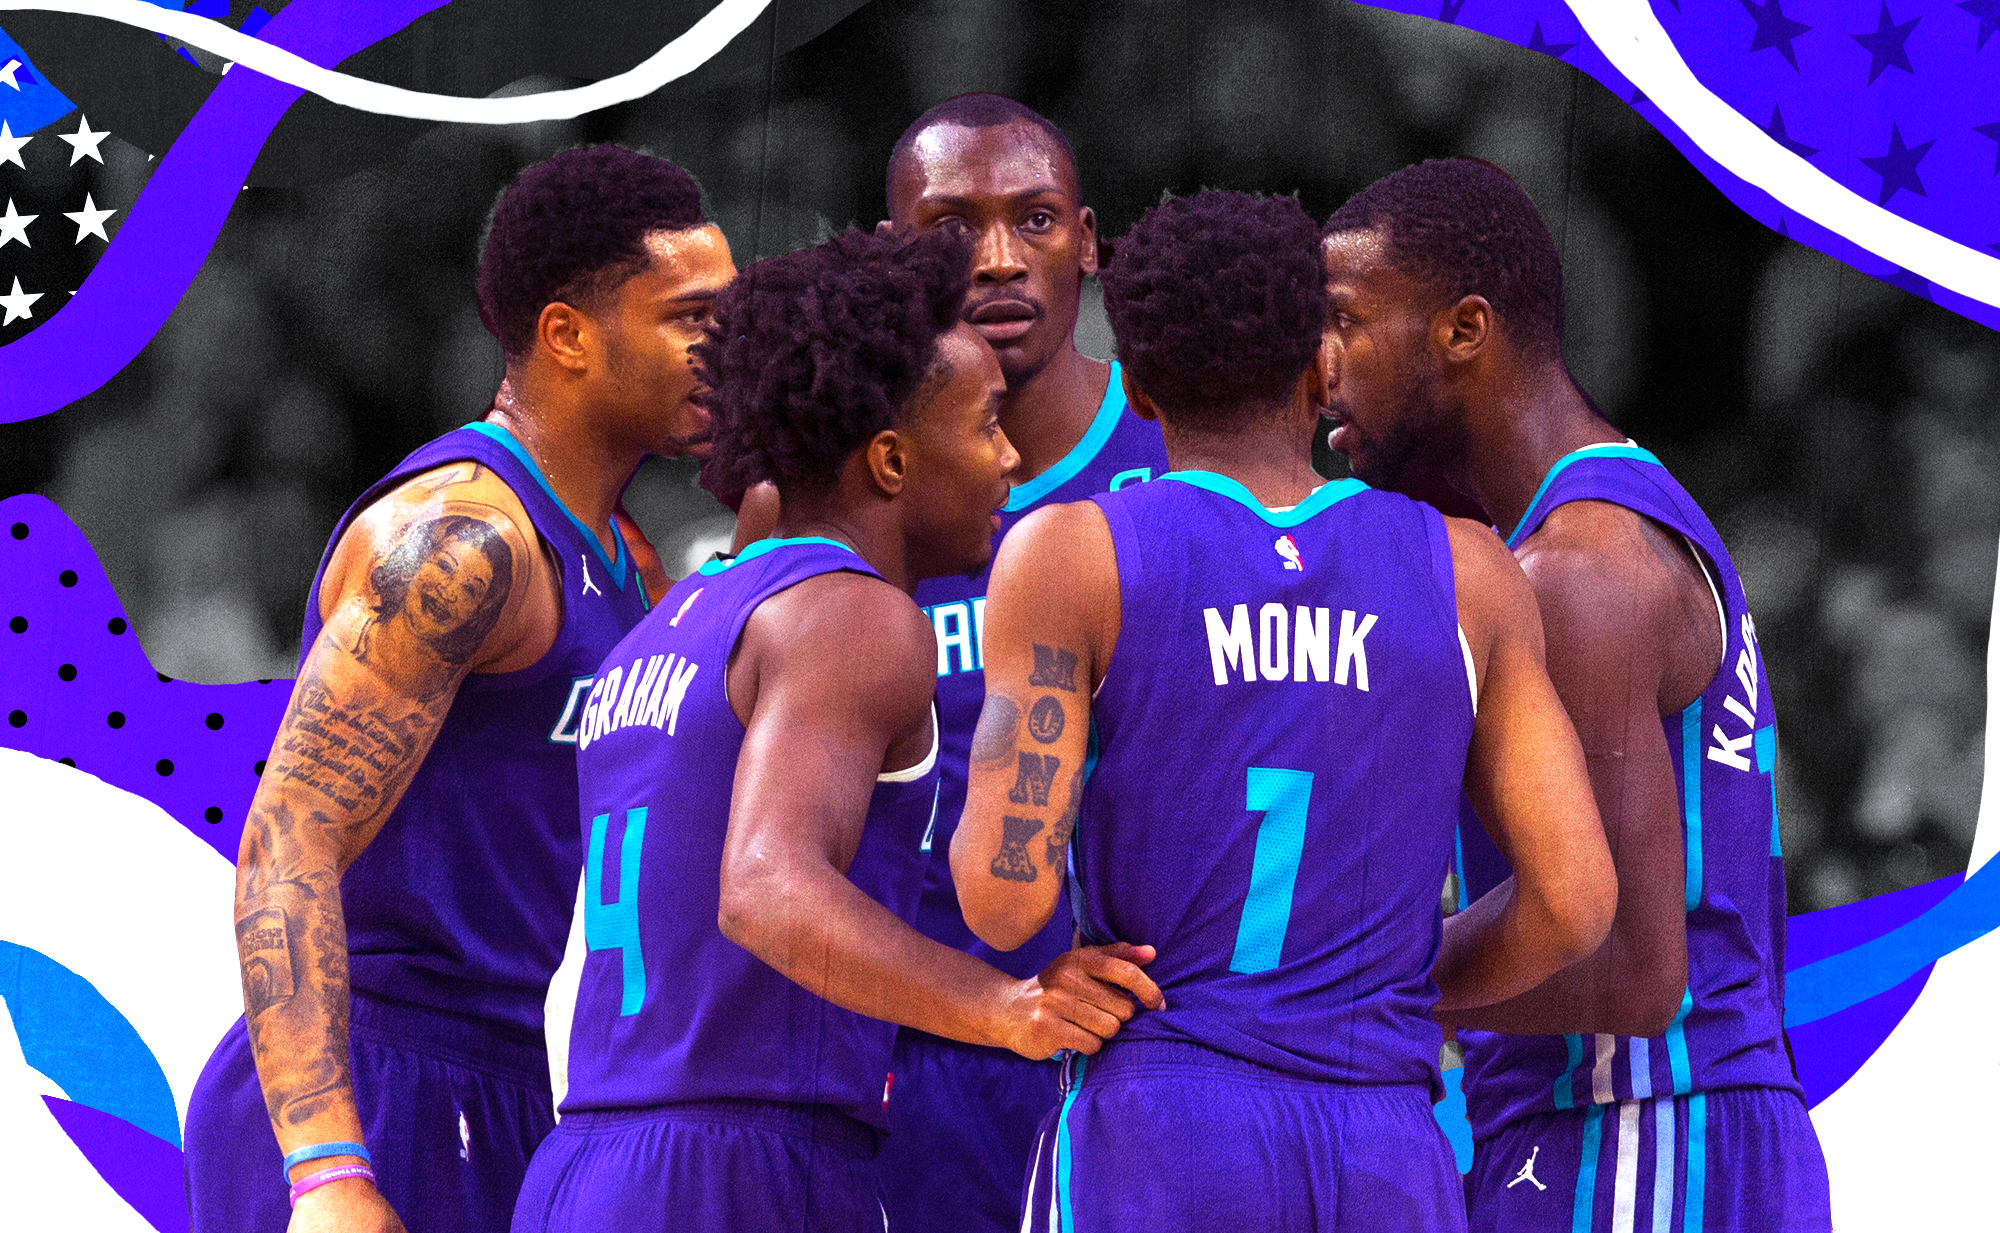 The Hornets should just become the NBA's weirdest science experiment